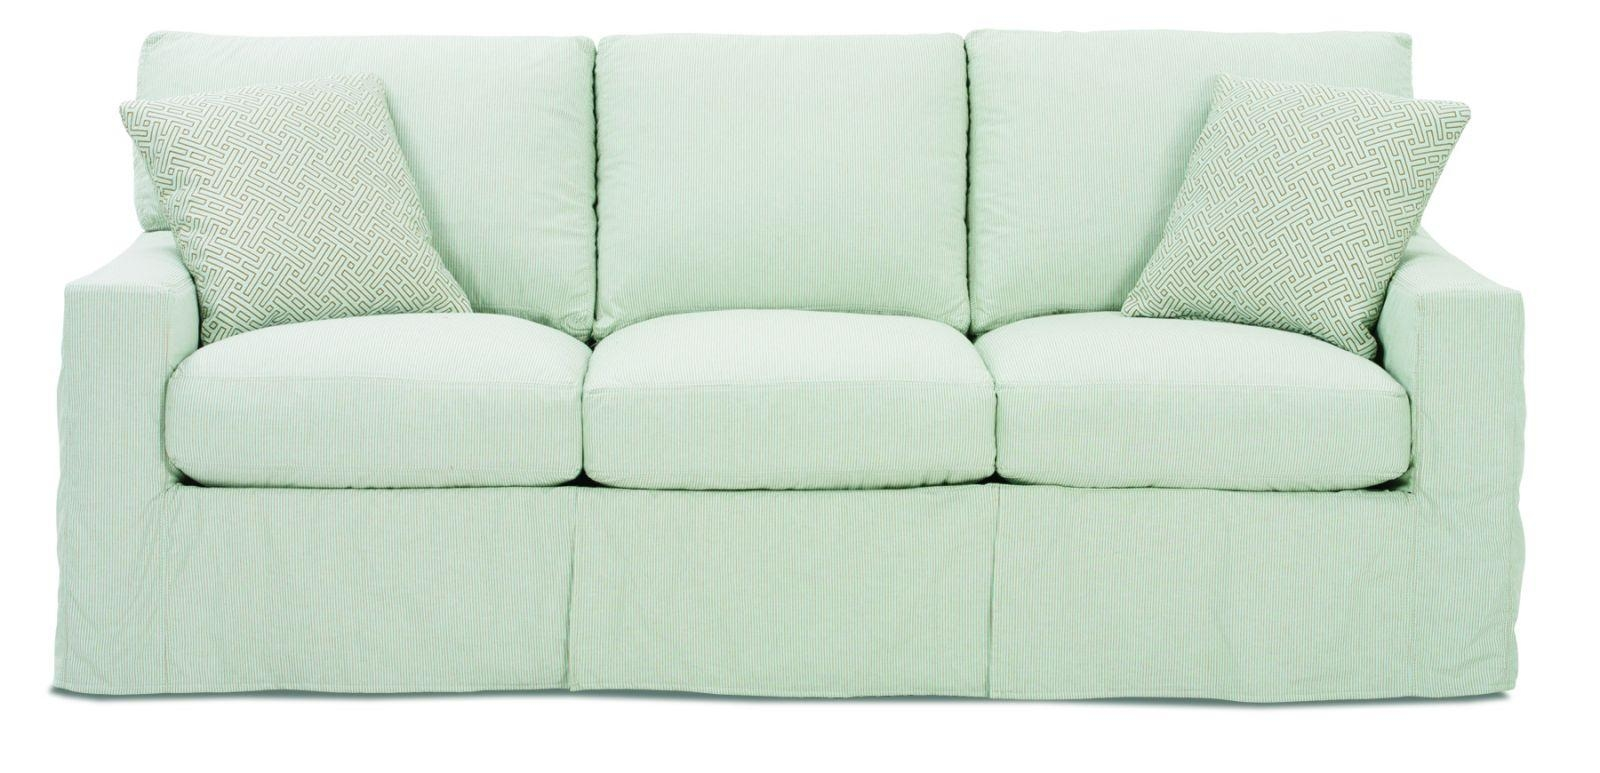 Sofas Center : Sofa Slipcovers Ottoman Sectional Rowe For With Regard To Rowe Slipcovers (Image 20 of 20)